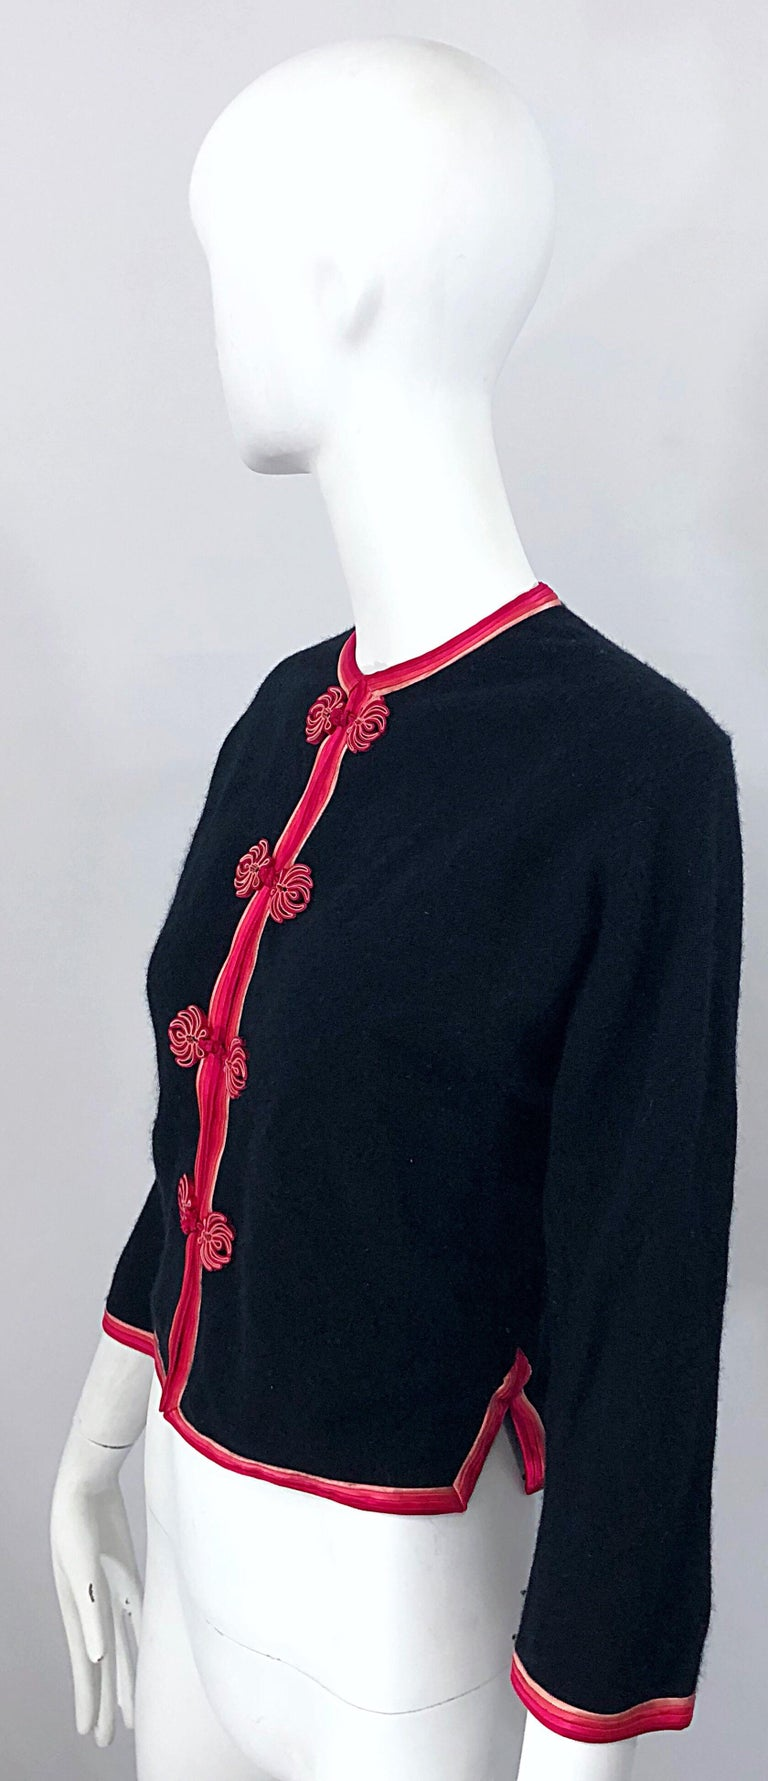 Women's 1950s Monhan's Ltd. Black Pink Asian Wool Hong Kong Vintage 50s Cardigan Sweater For Sale